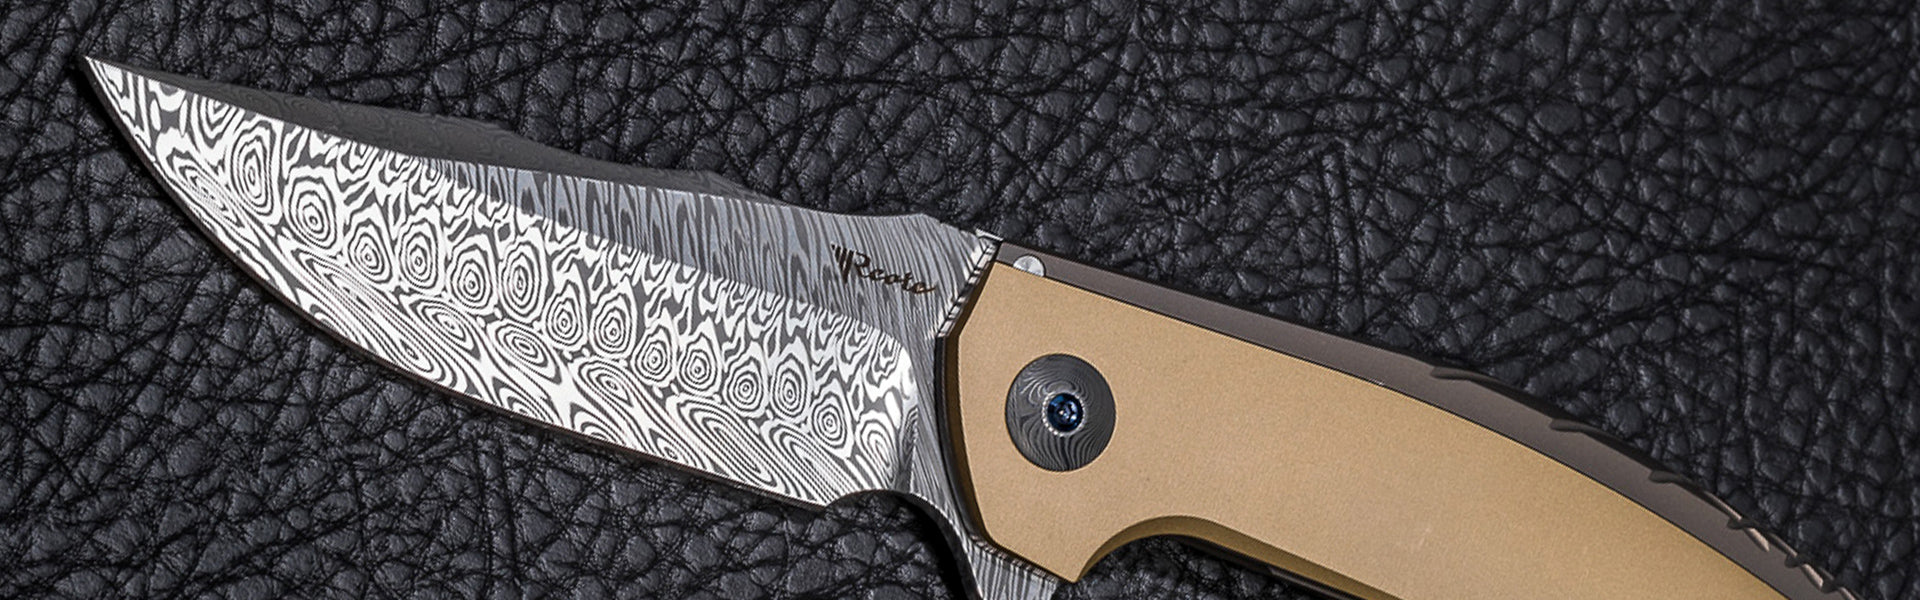 Reate Knives